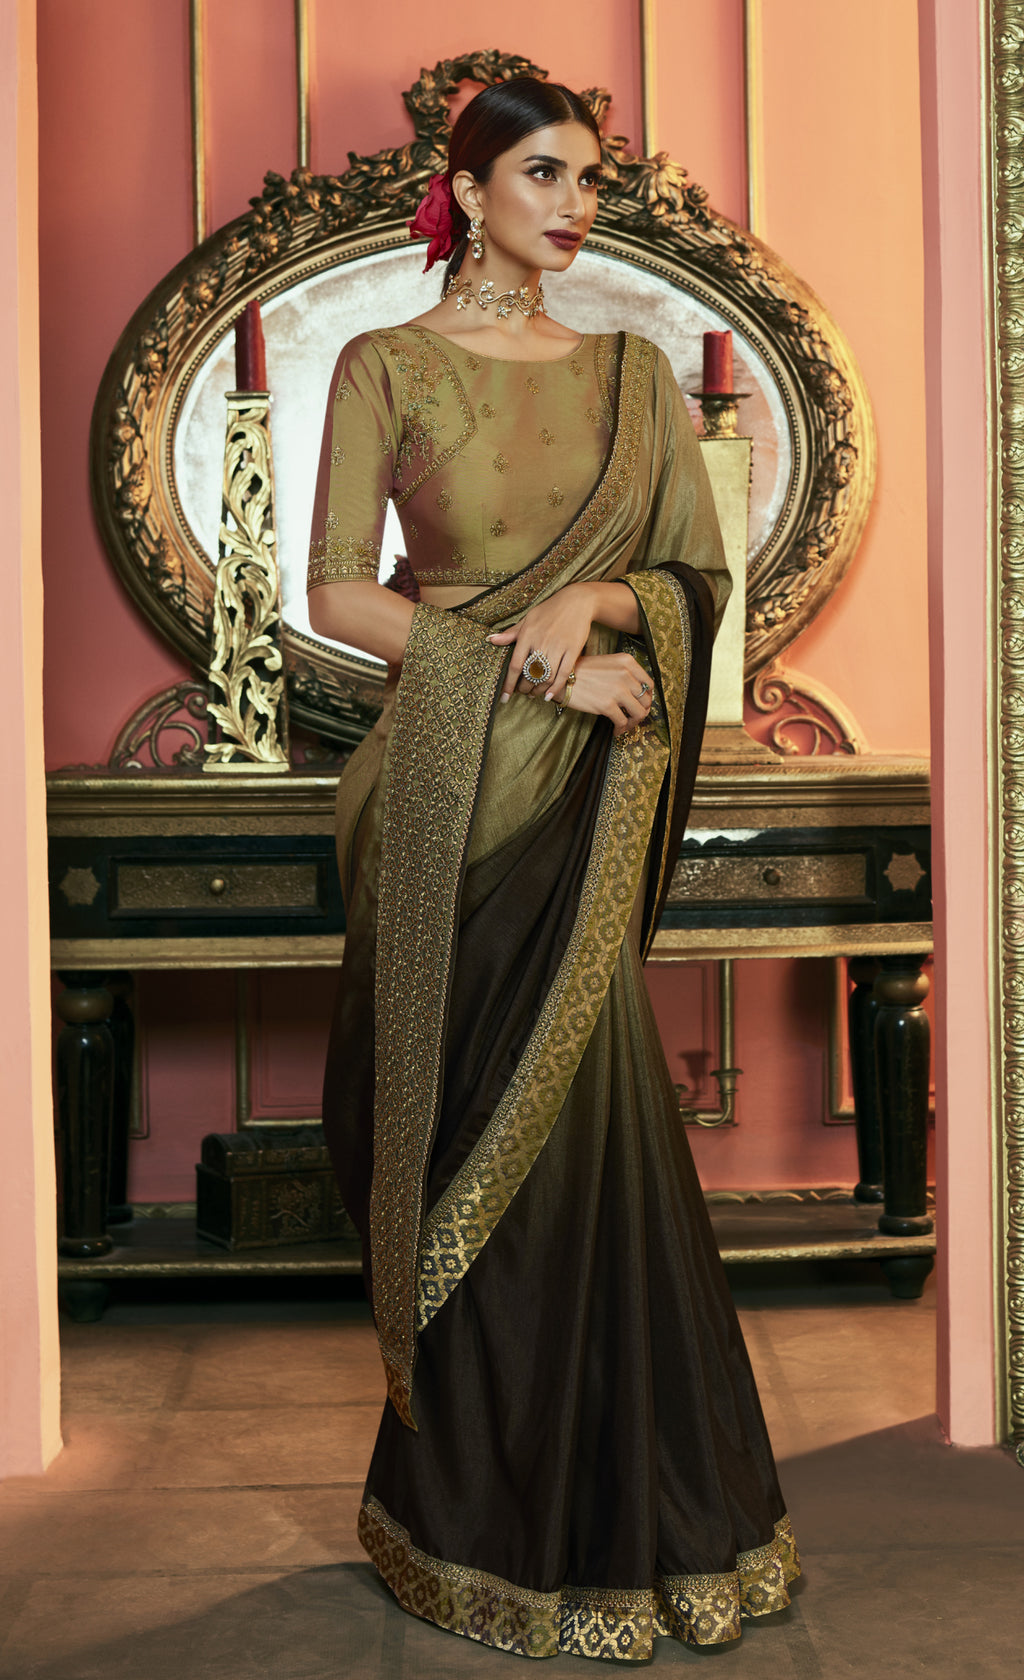 Olive Green & Brown Color Crepe Silk Dazzling Festive Sarees NYF-6064